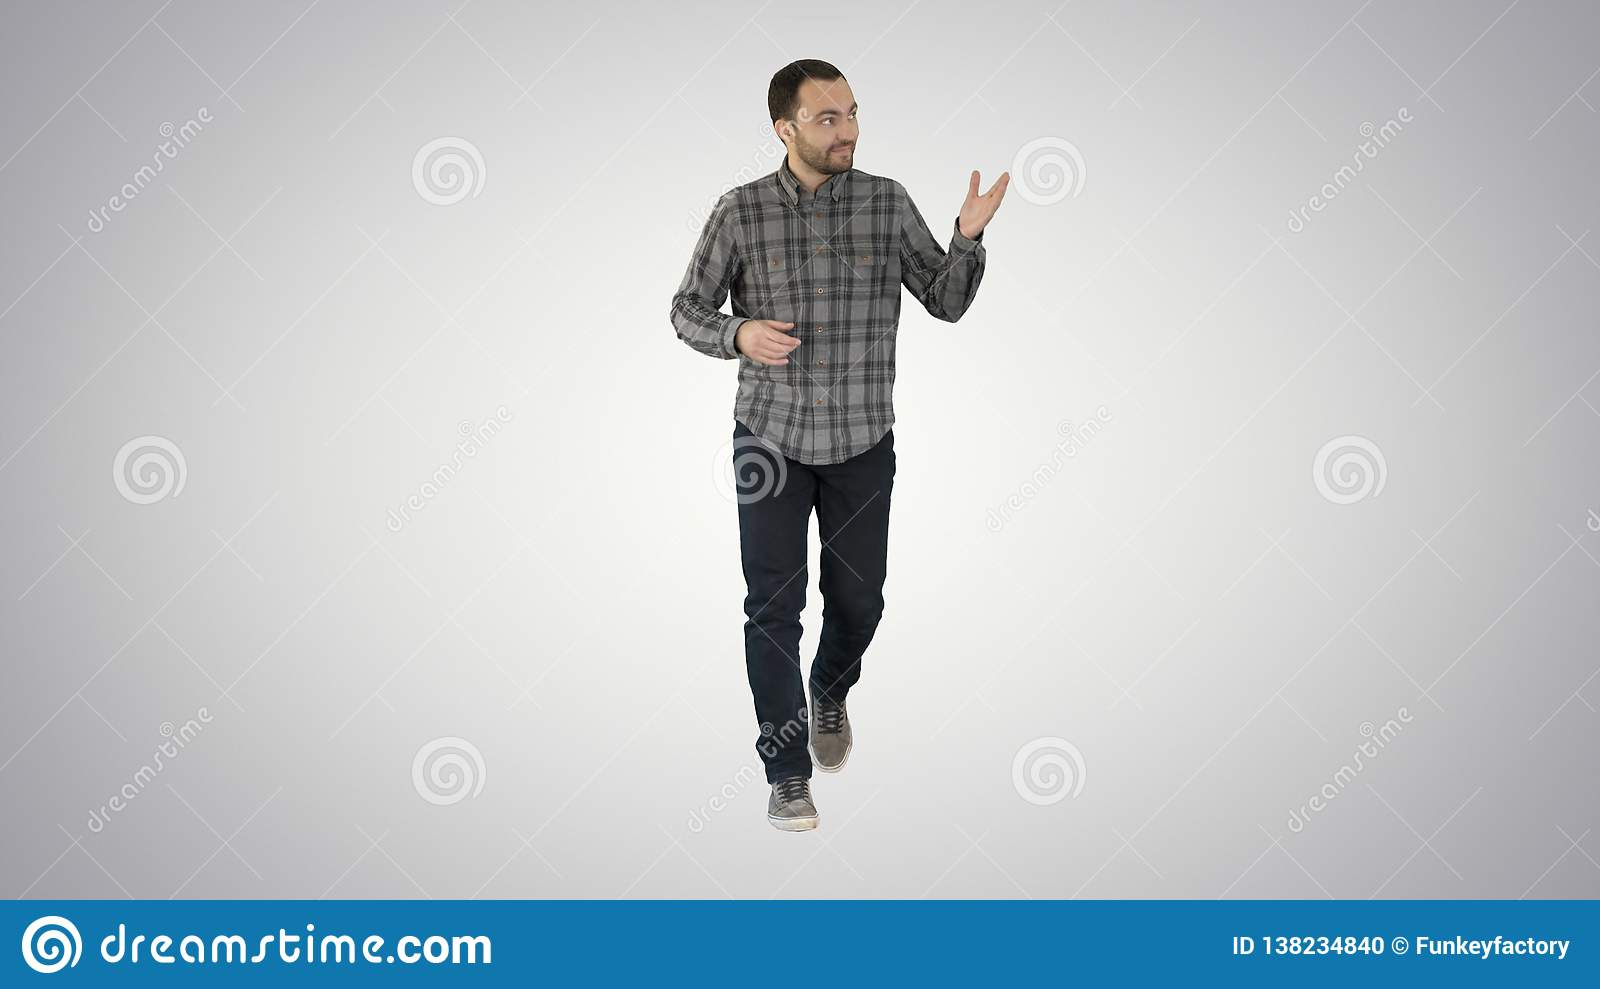 Young confident man in shirt and jeans walking towards camera and pointing to the sides on gradient background.